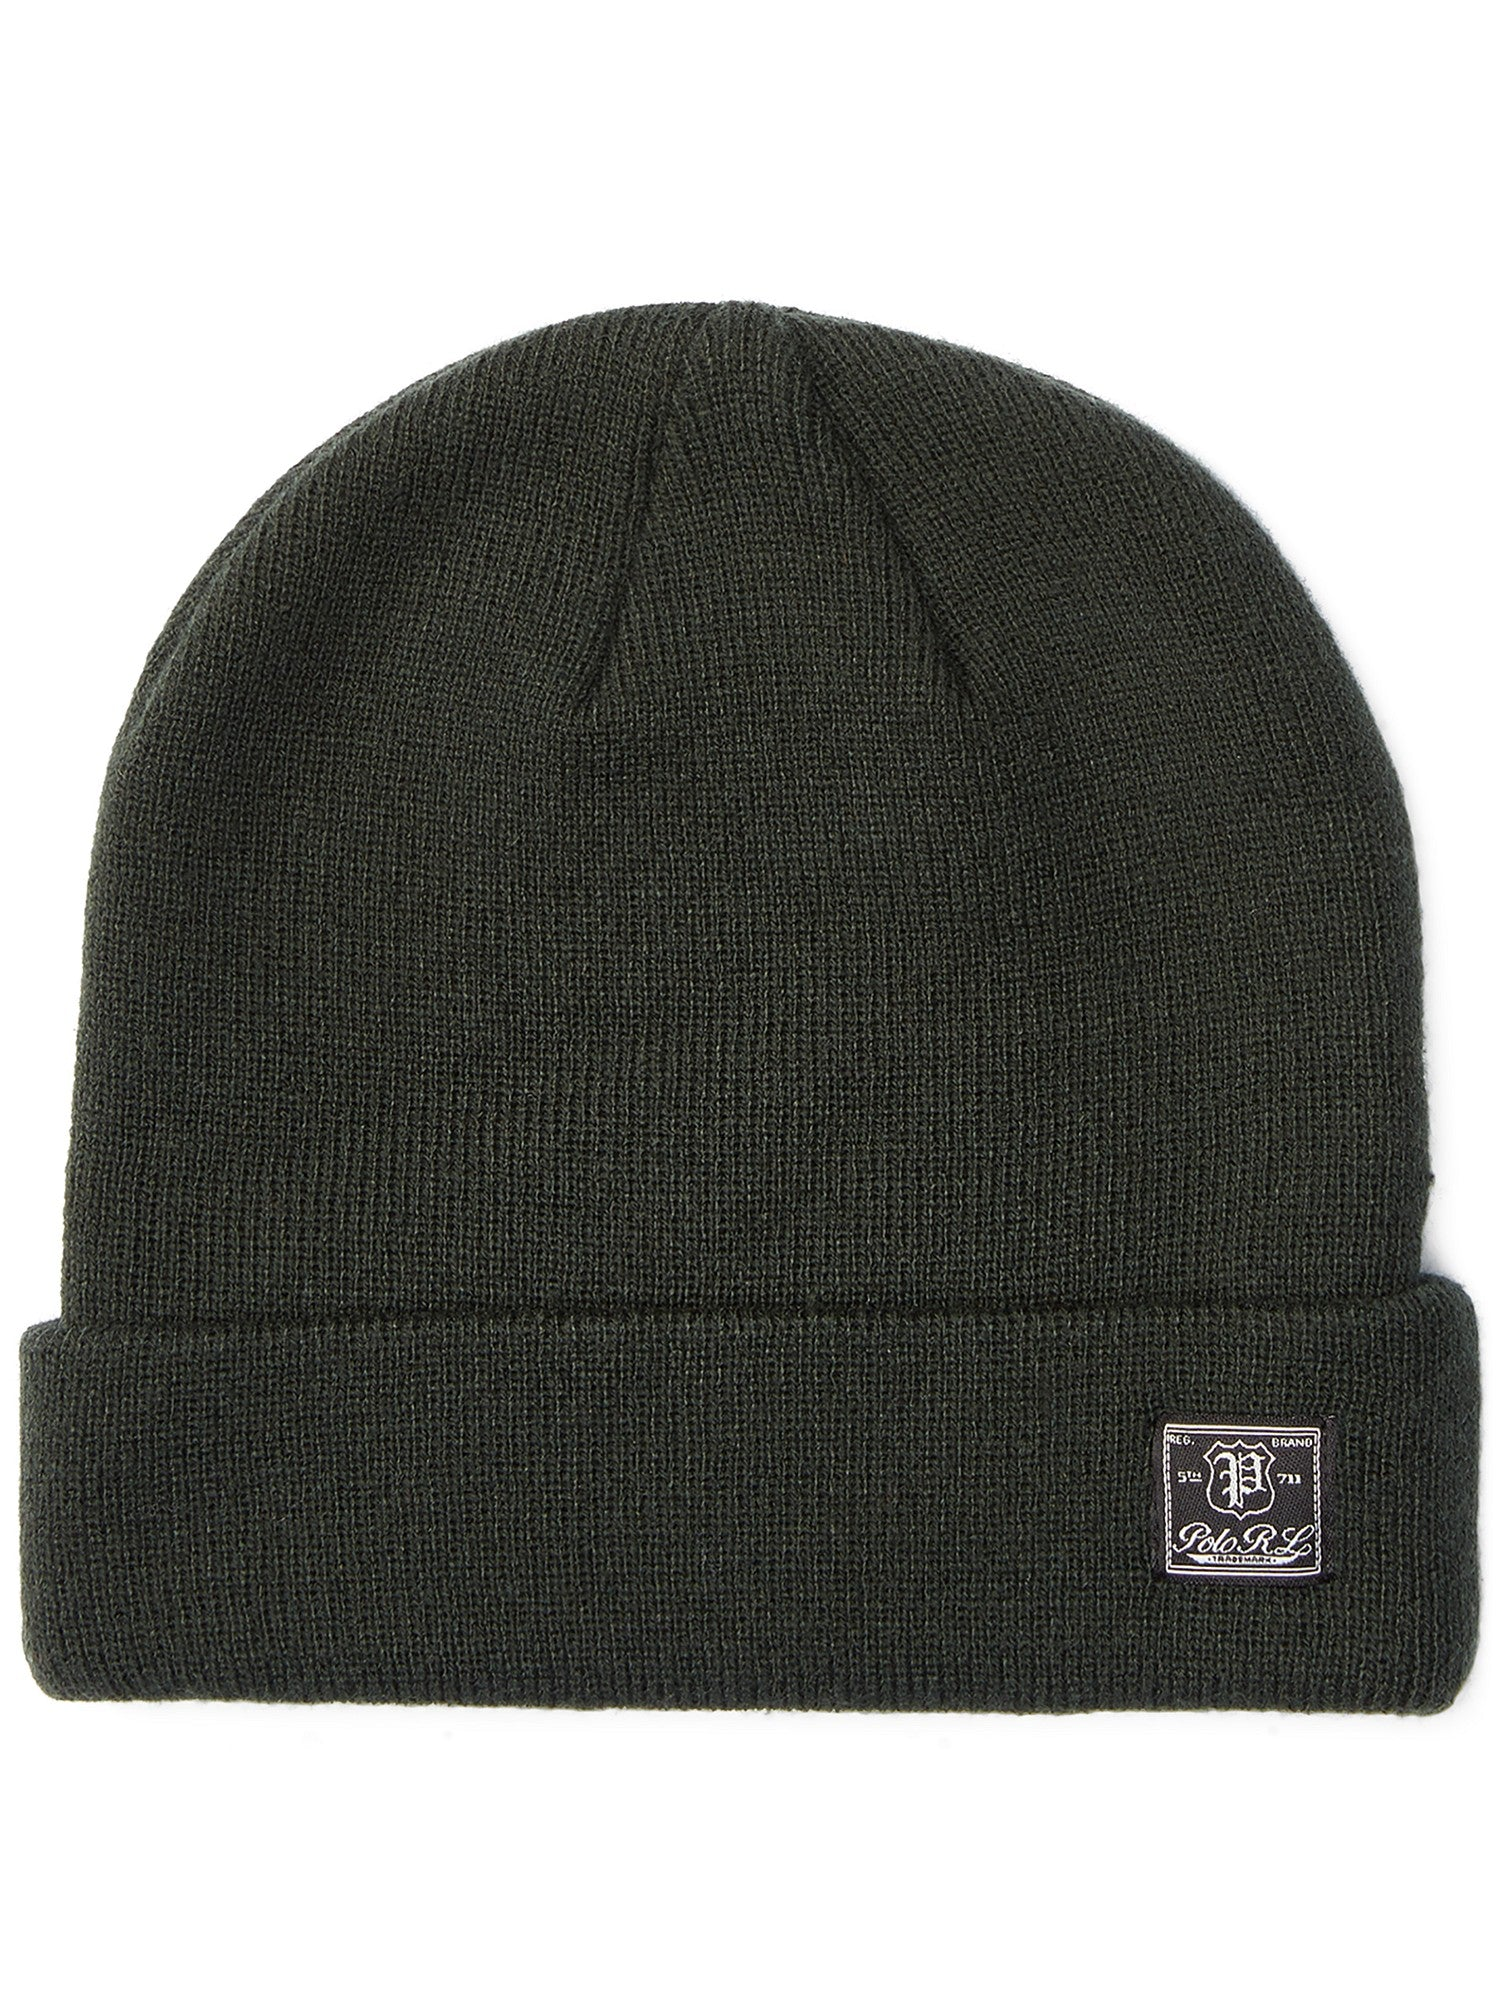 309c8f56a68492 Polo Ralph Lauren Men's Cuffed Knit Hat – Retail Trunk